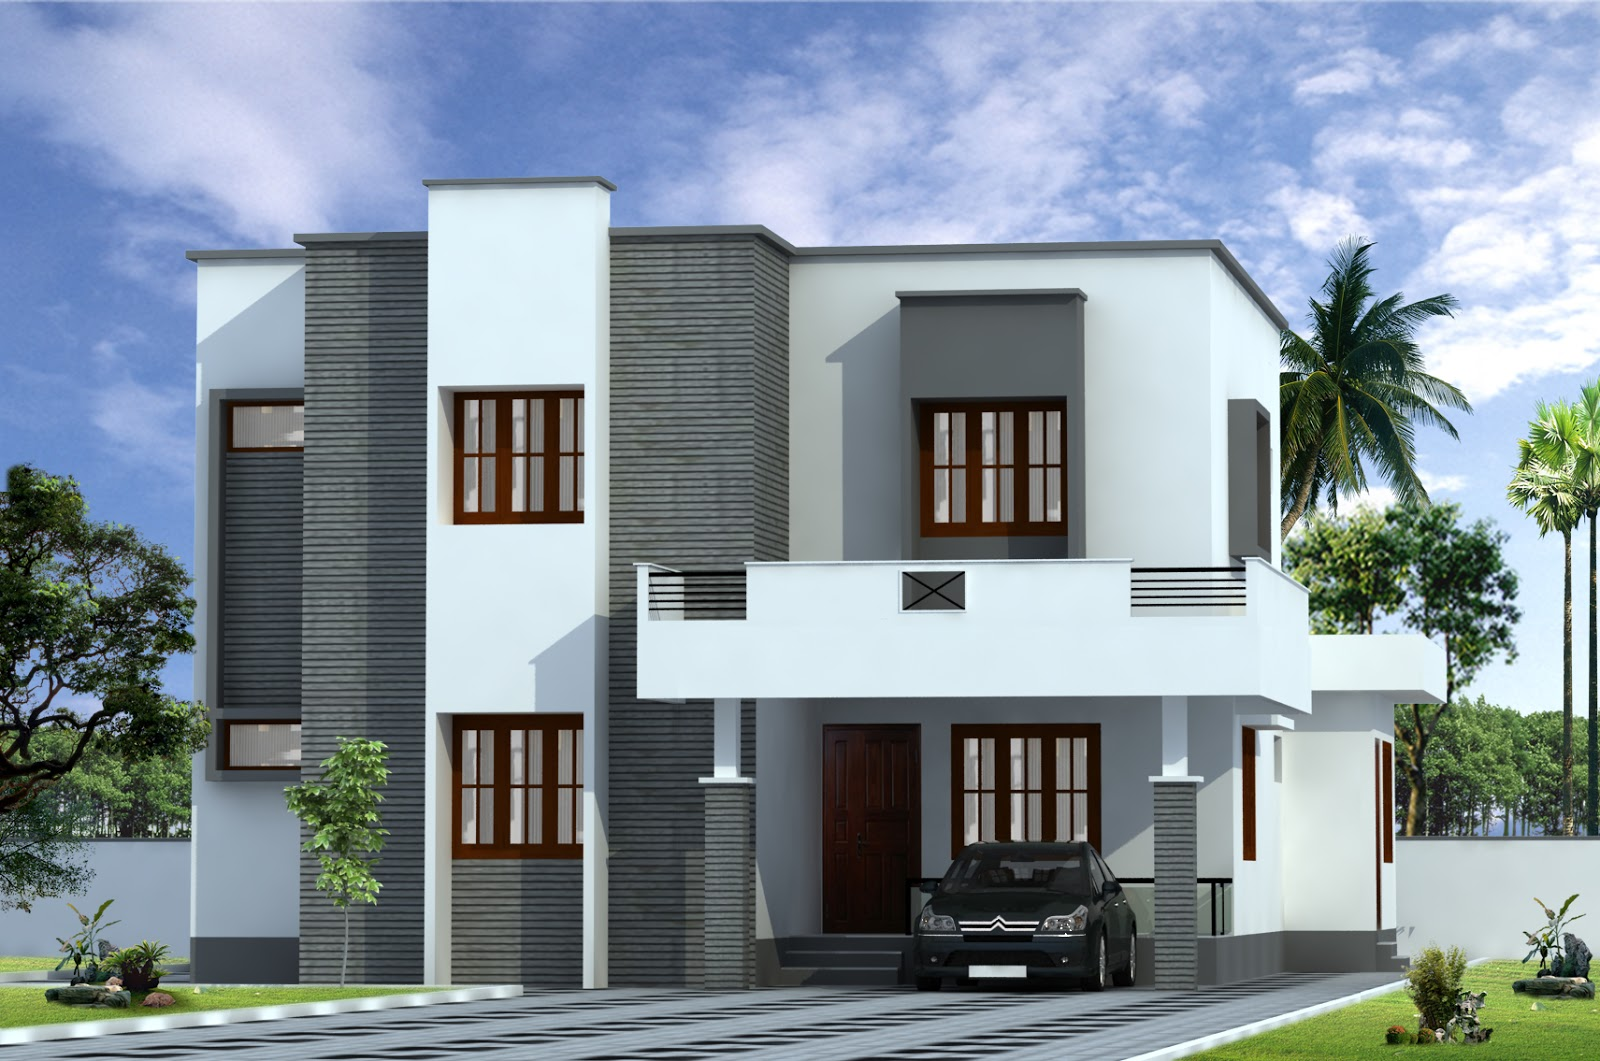 Build a building house designs Latest simple house design